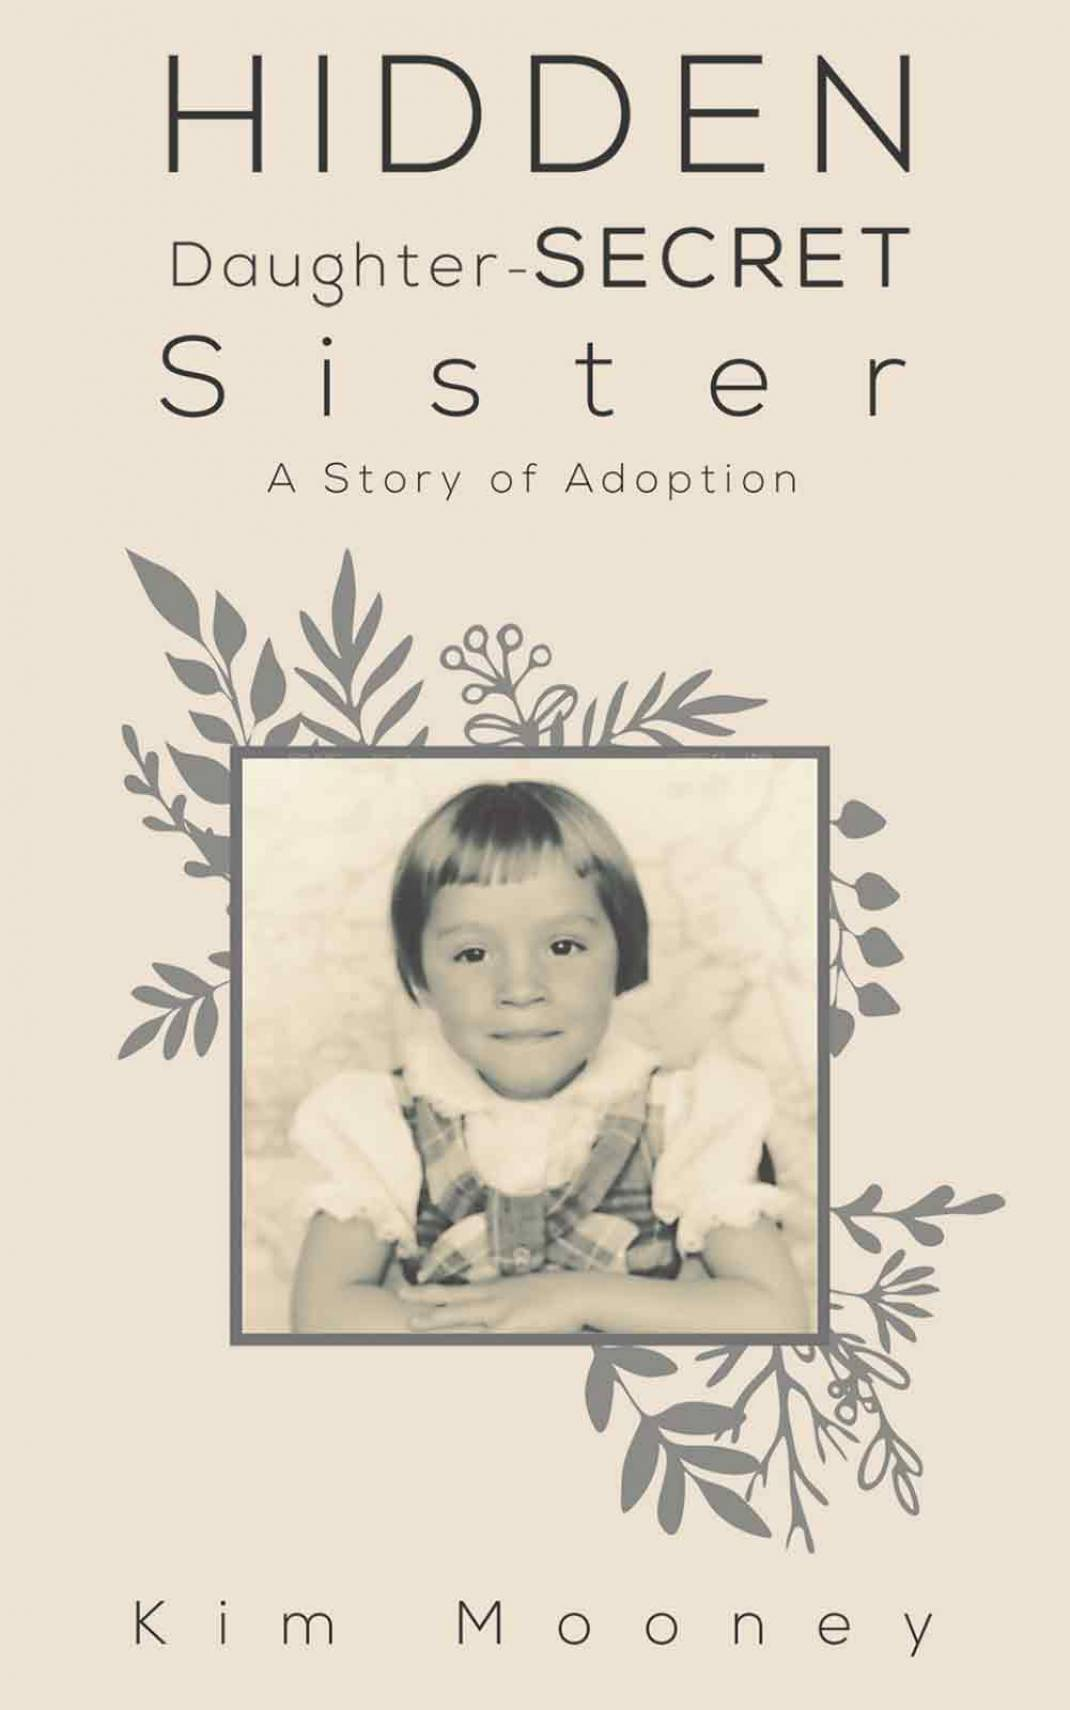 A hidden daughter and secret sister explores the shame and rejection felt by B.C. adoptees